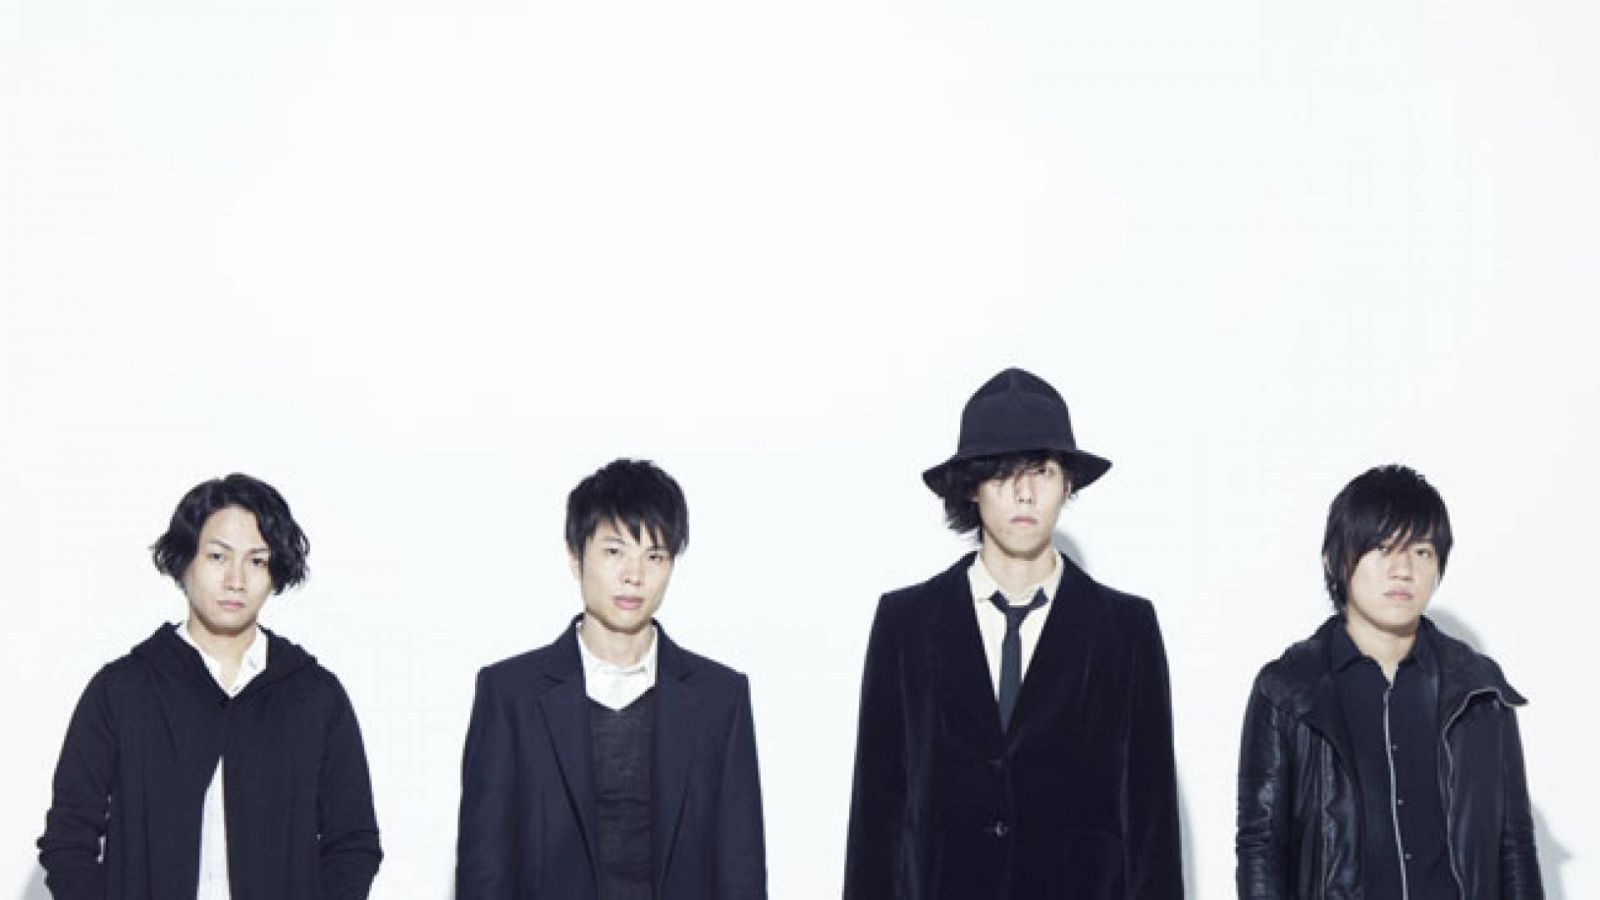 RADWIMPS © 2015 UNIVERSAL MUSIC LLC. All rights reserved.